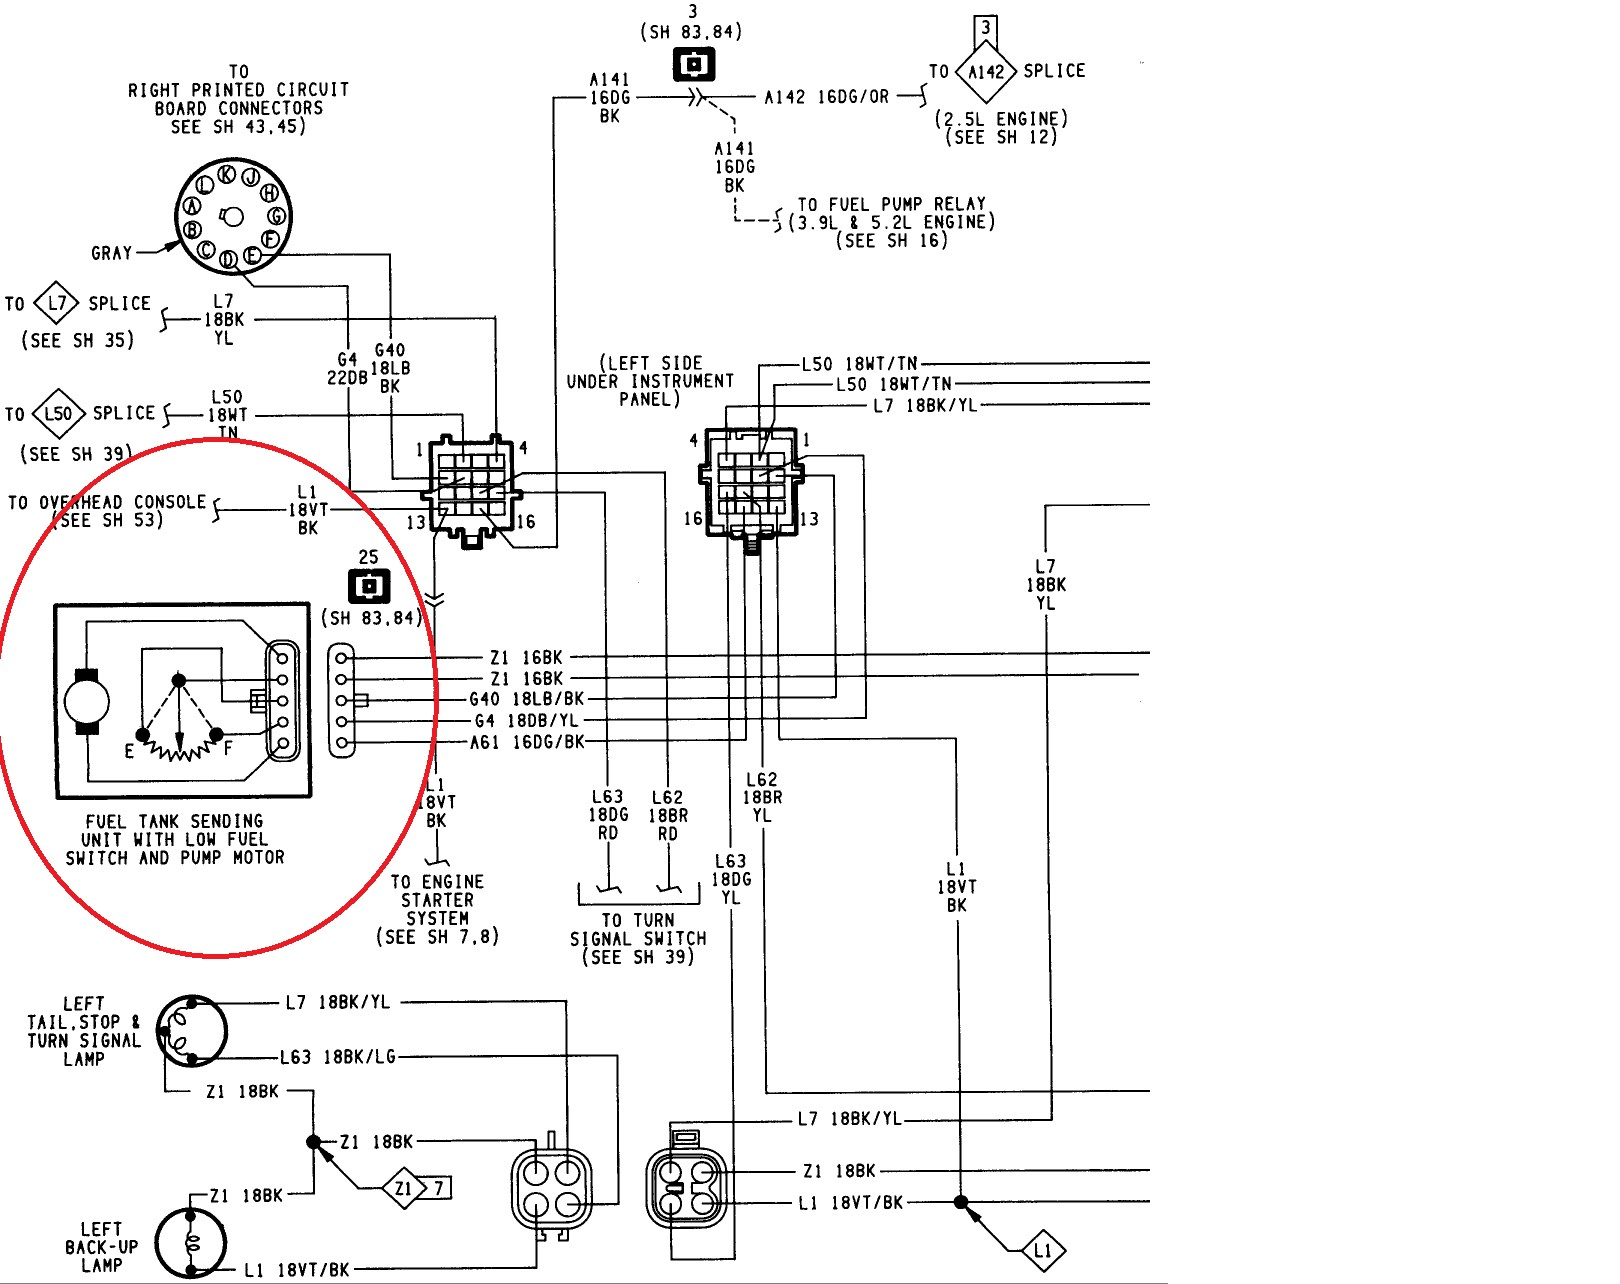 Sending Unit Wiring Diagram Free For You Pressure Tank Fuel Sender Oil Gauge